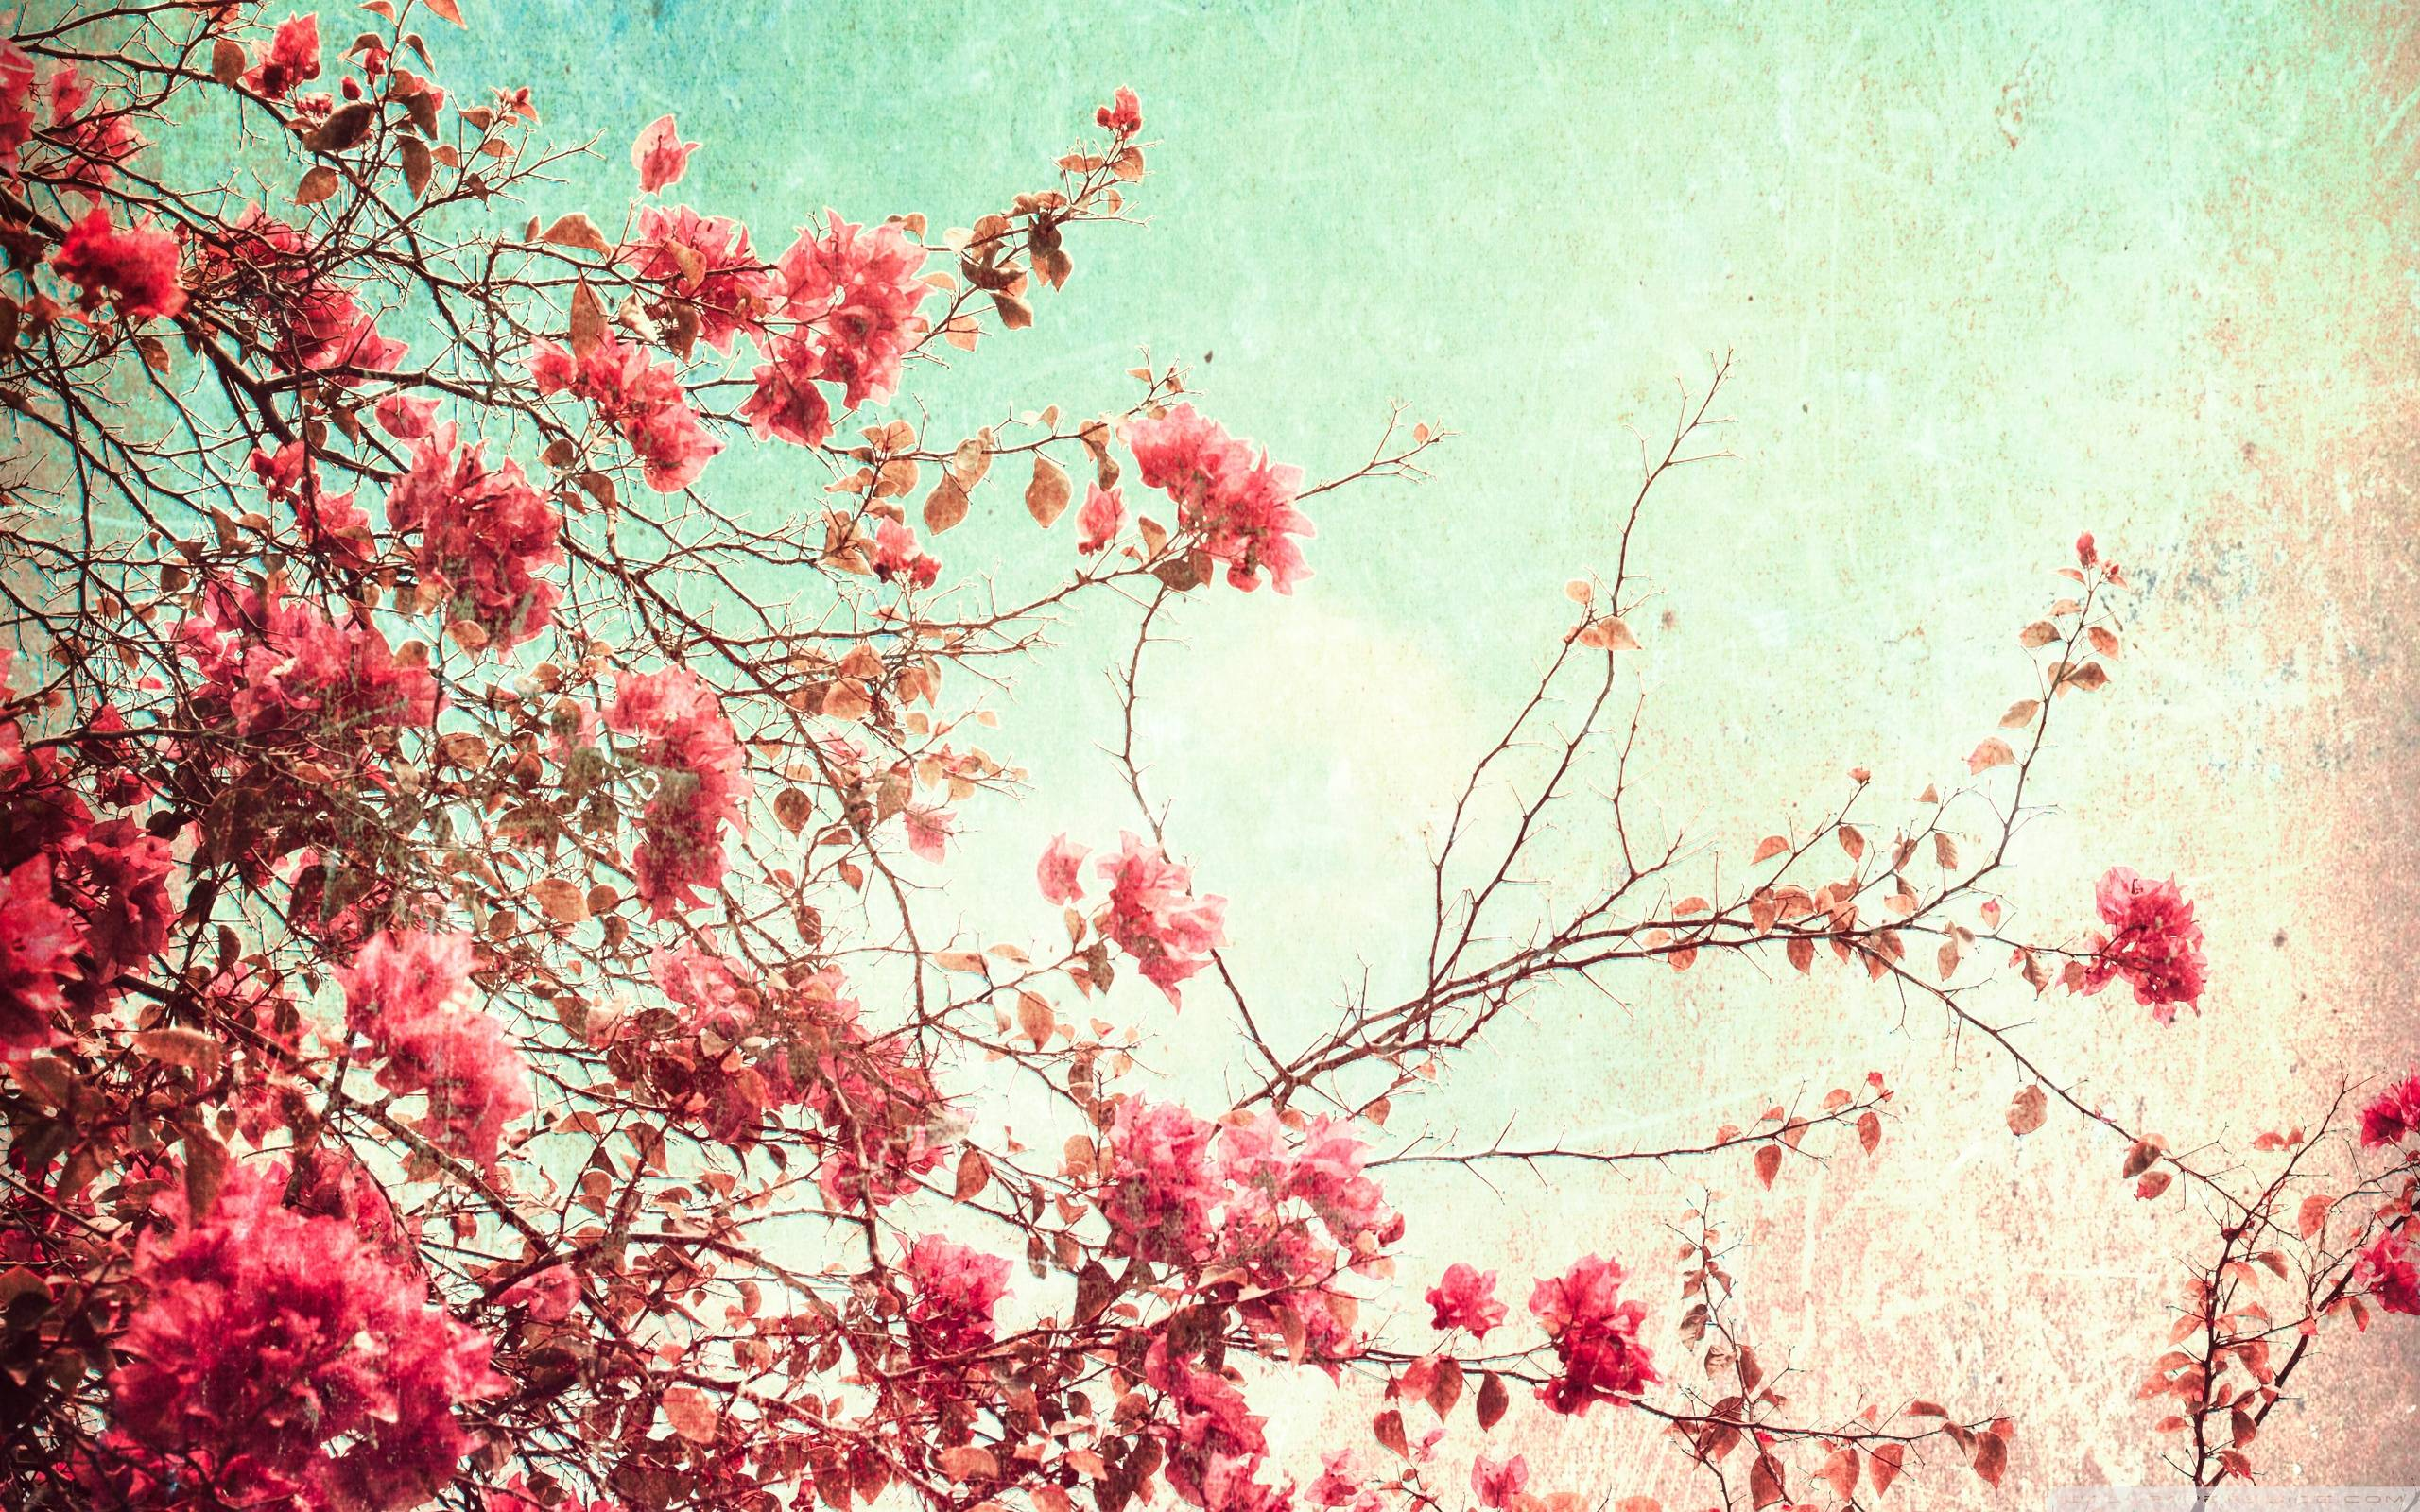 Vintage Wallpapers 5 amazing backgrounds 31376 HD Wallpapers